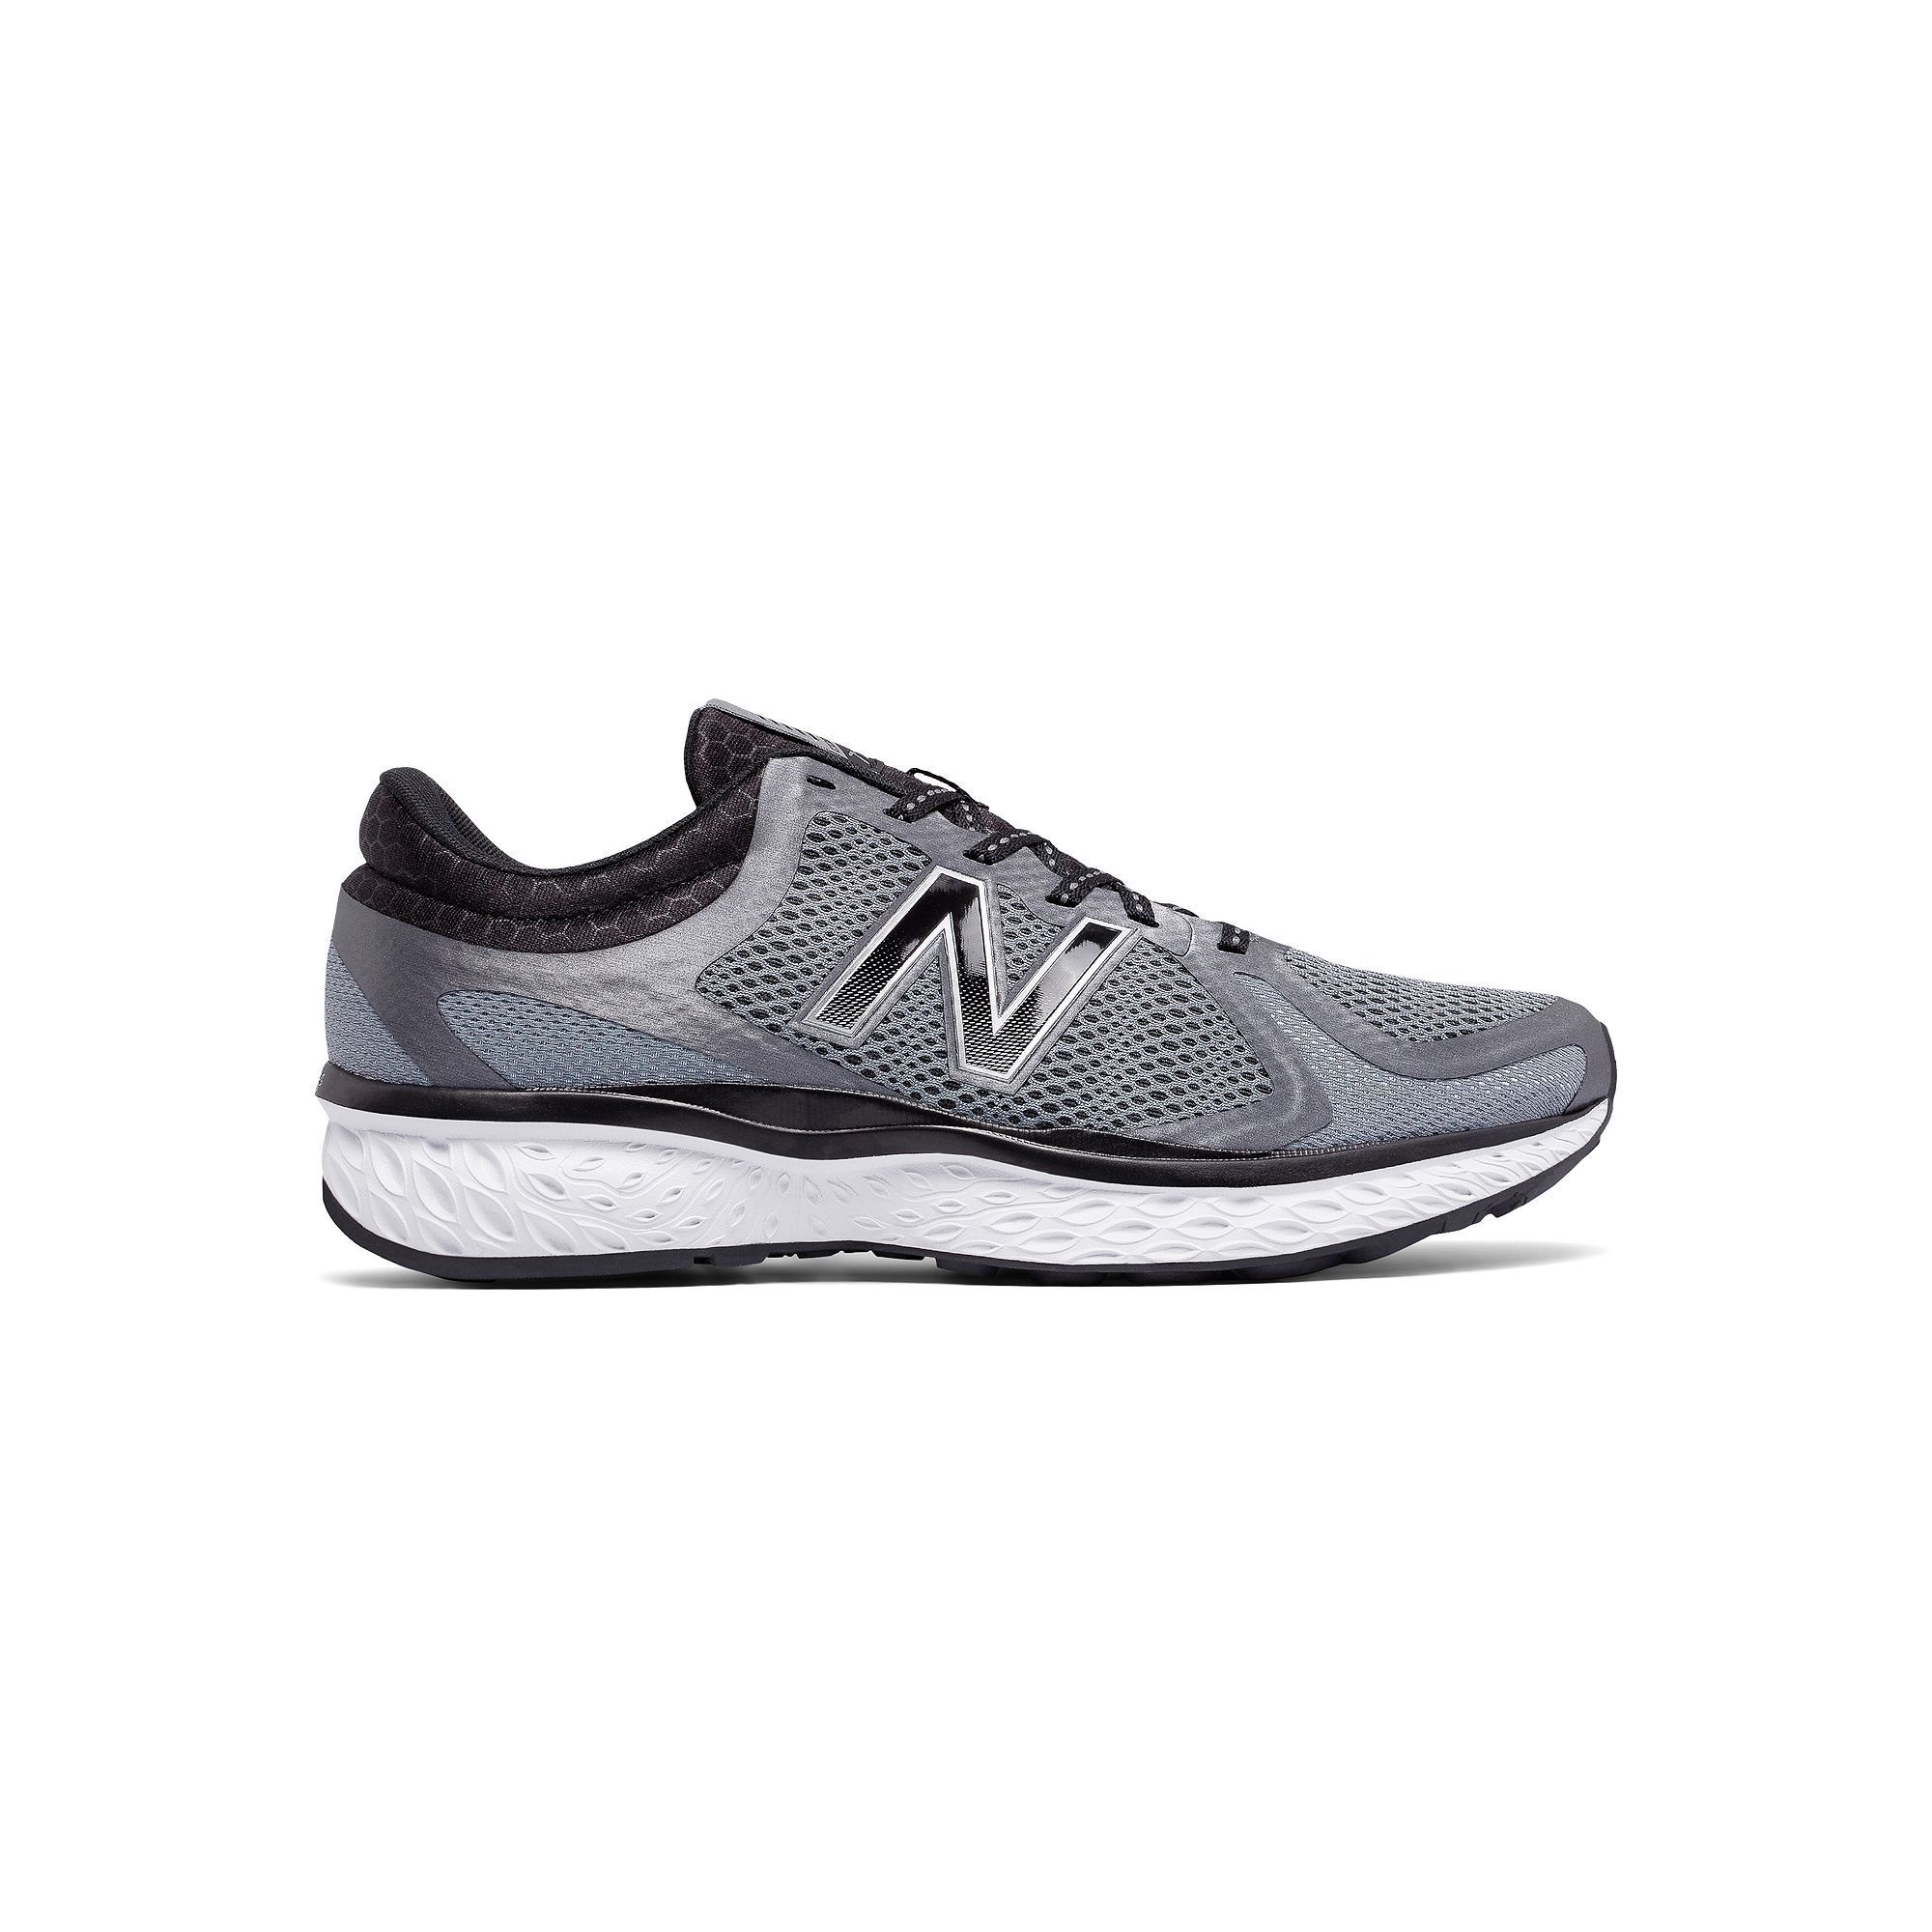 New Balance 720 v4 Men\u0027s Running Shoes, Size: 10.5 Ew 4E, Med Grey